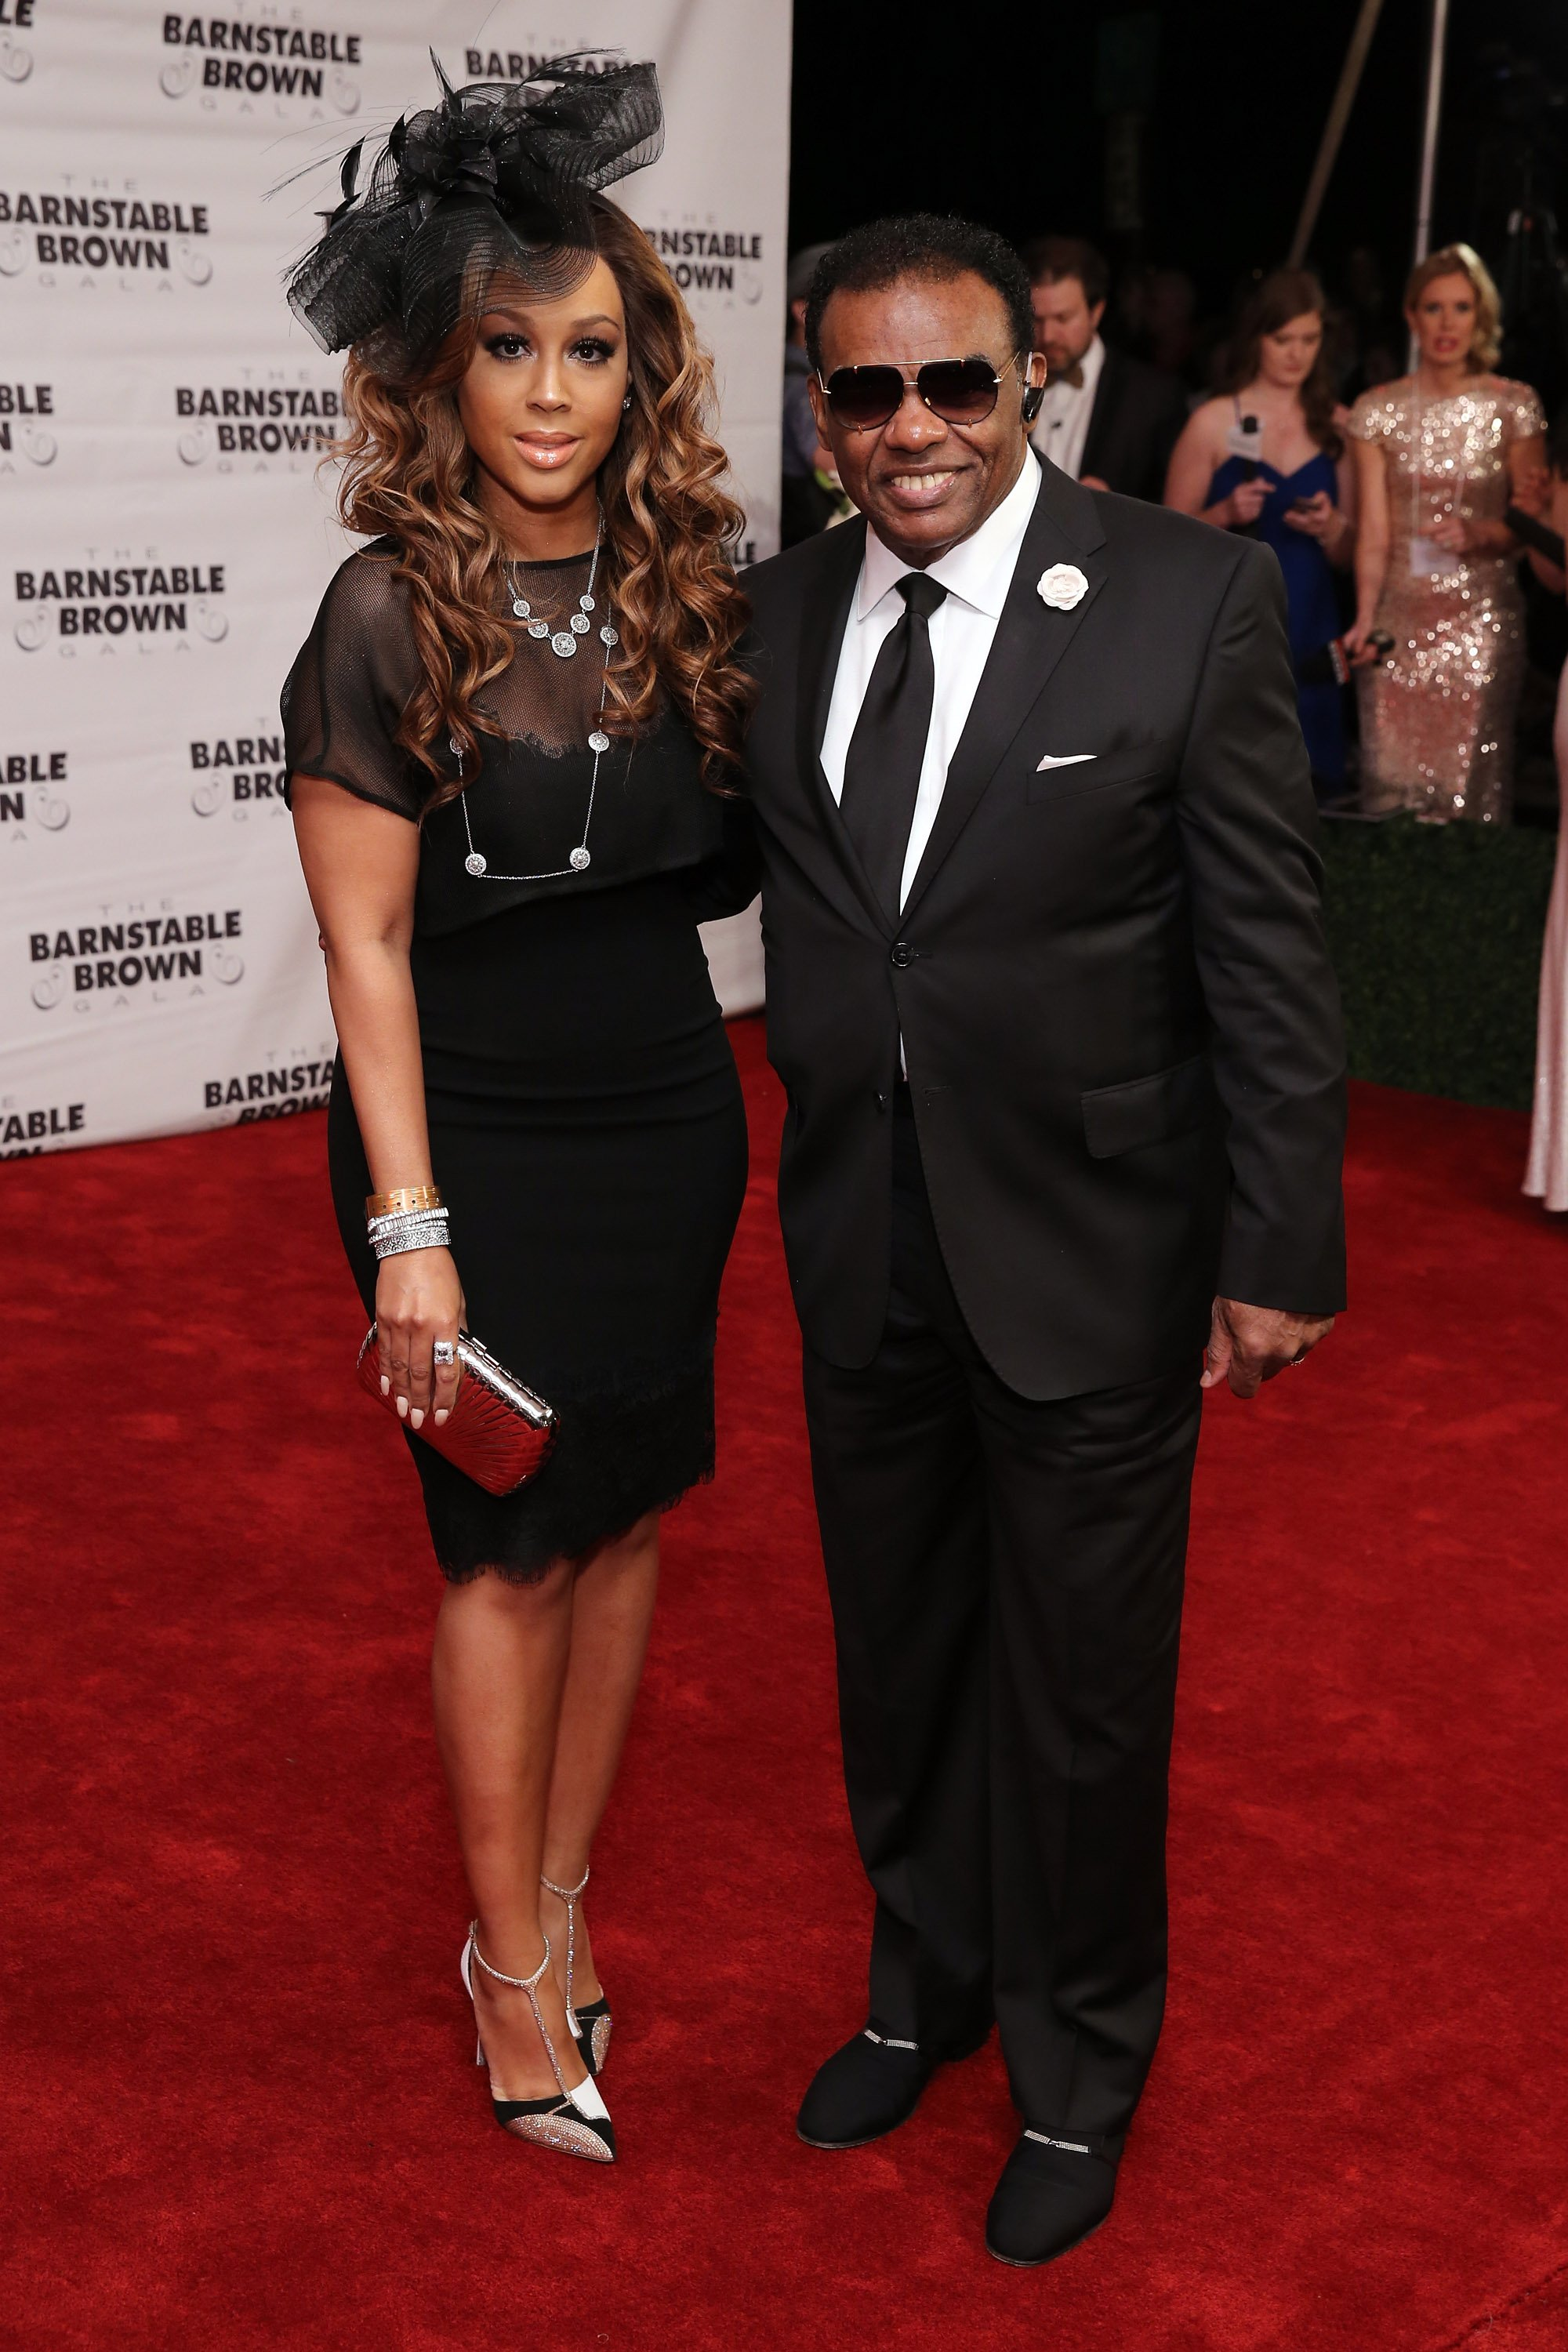 Ron Isley & Kandy Johnson Isley at the Barnstable Brown Kentucky Derby Eve Gala on May 1, 2015.   Photo: Getty Images